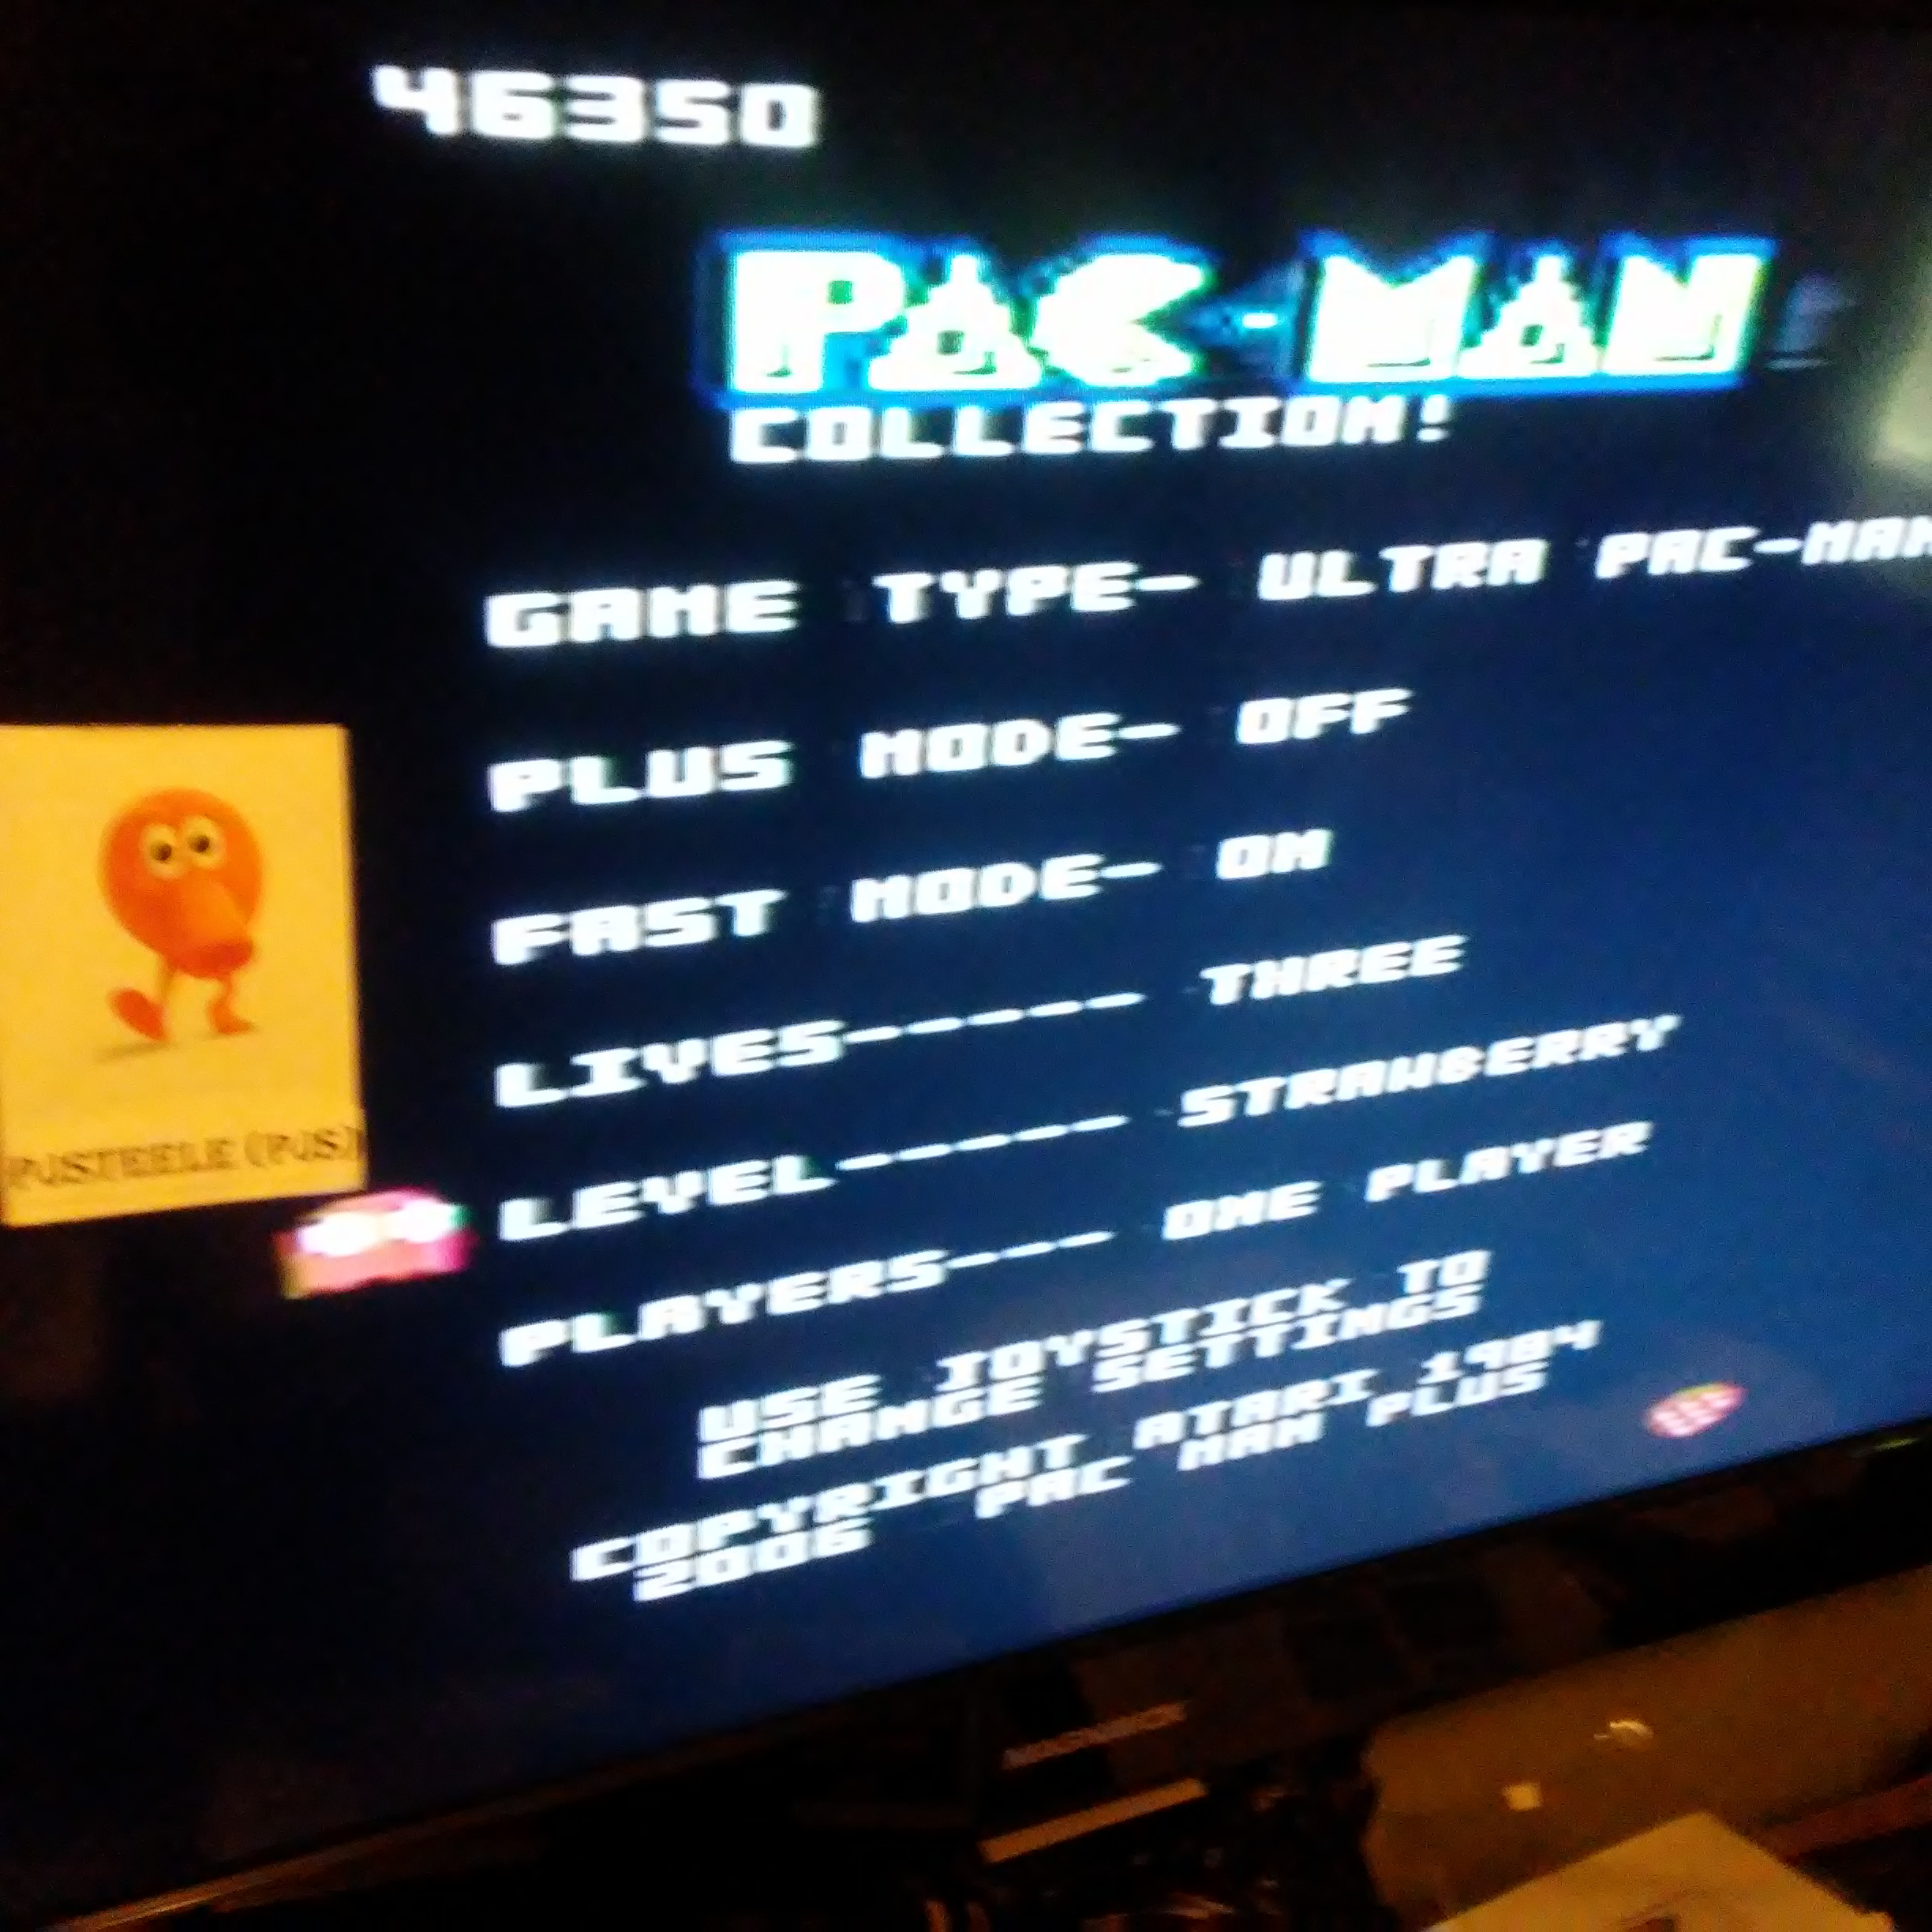 Pjsteele: Pac-Man Collection: Ultra Pac-Man [Strawberry/Plus Off/Fast On] (Atari 7800) 46,350 points on 2018-07-06 18:09:54